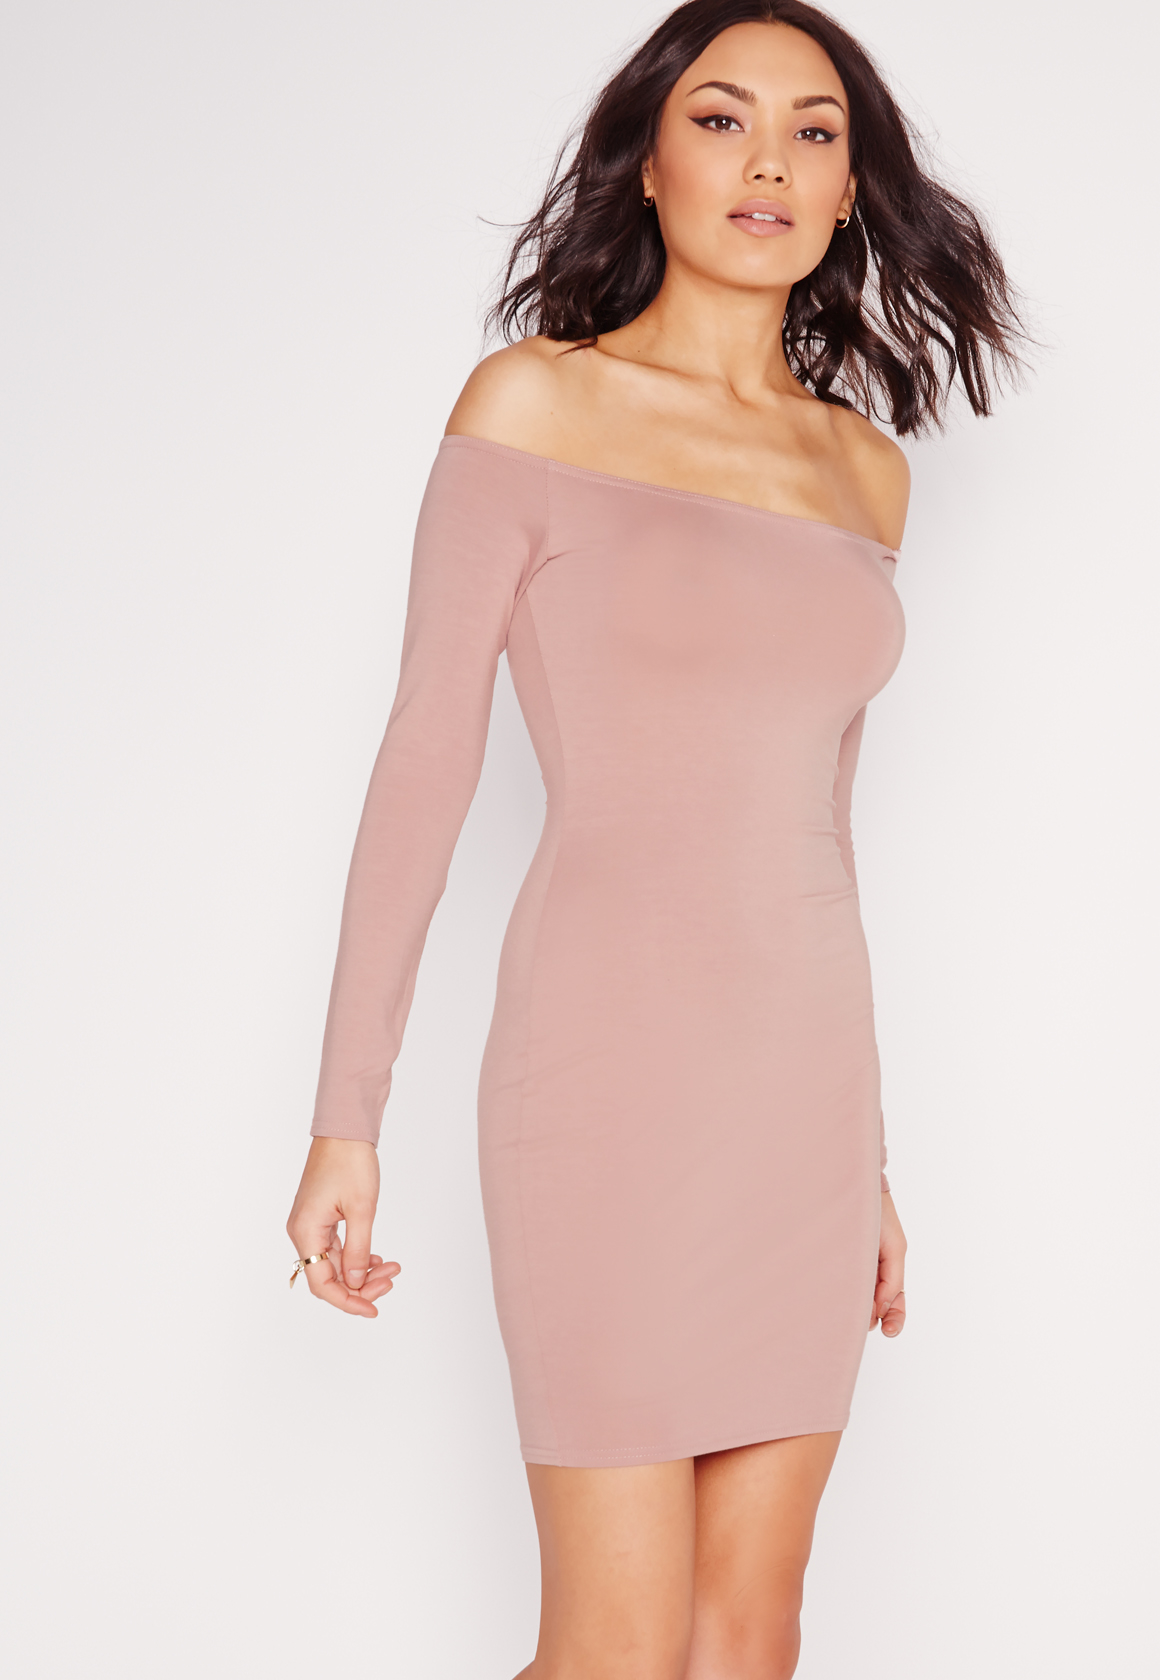 Light Pink Long Sleeve Bodycon Dress & New Fashion Collection